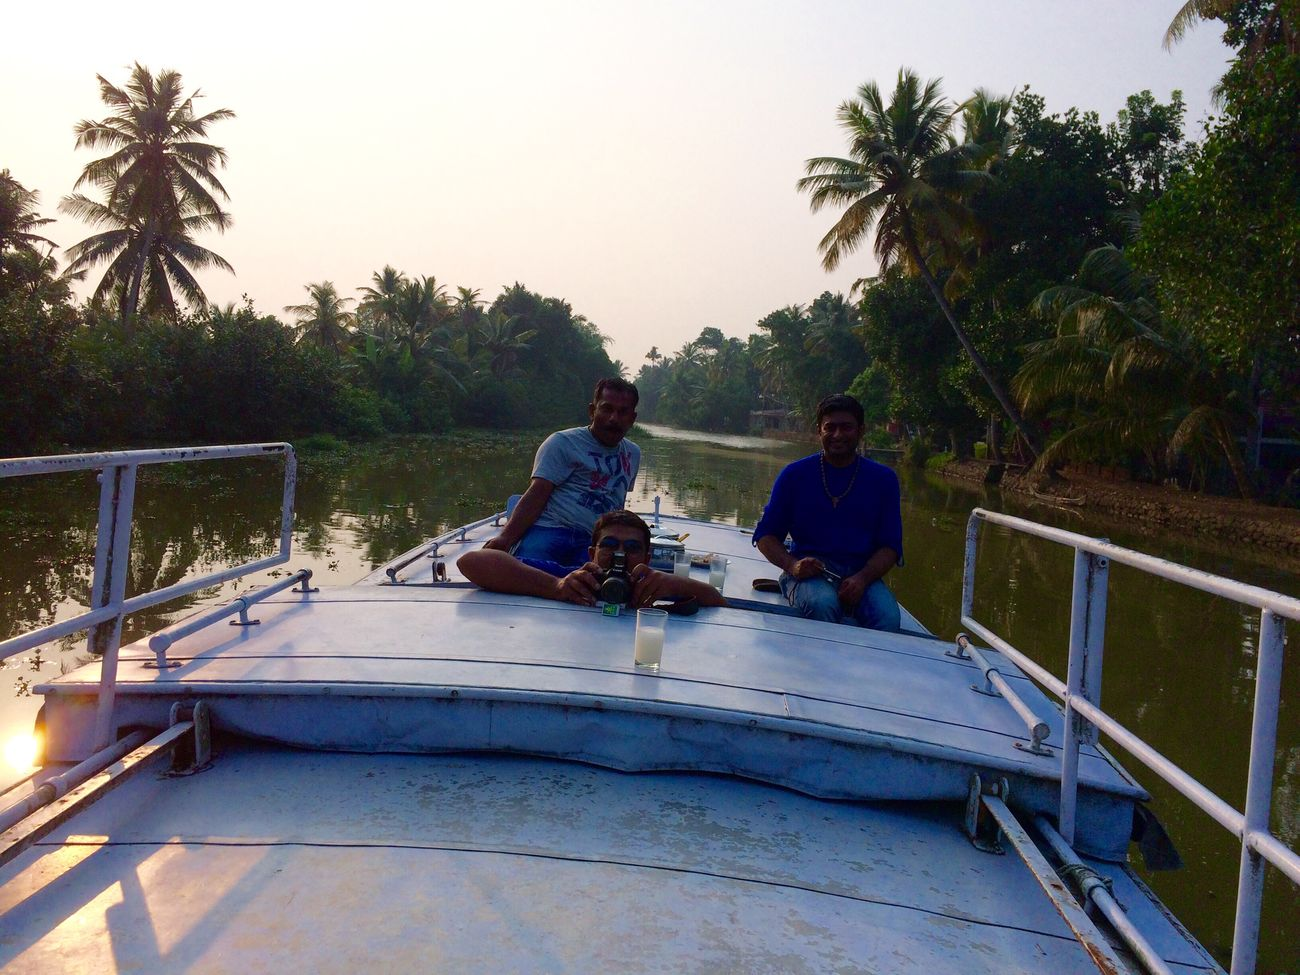 Finding New Frontiers Tranquility Travel Boating Top Of A Boat Enjoying Life Boat Ride Backwaters Kerala Evening